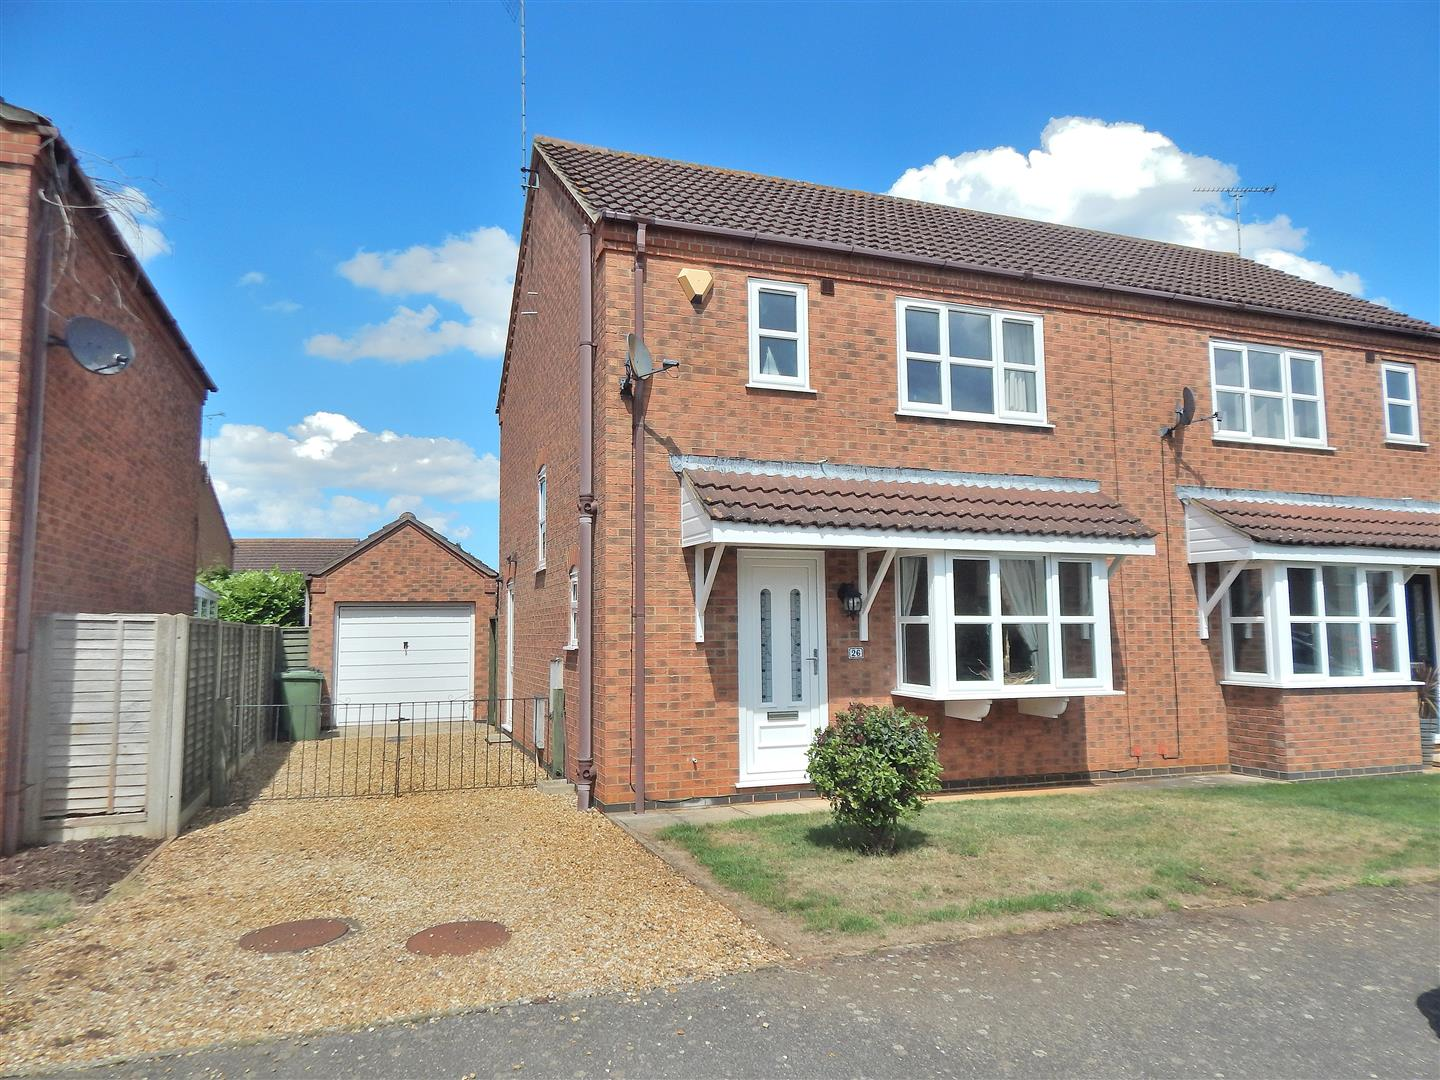 3 bed semi-detached house for sale in King's Lynn, PE31 6UT 0